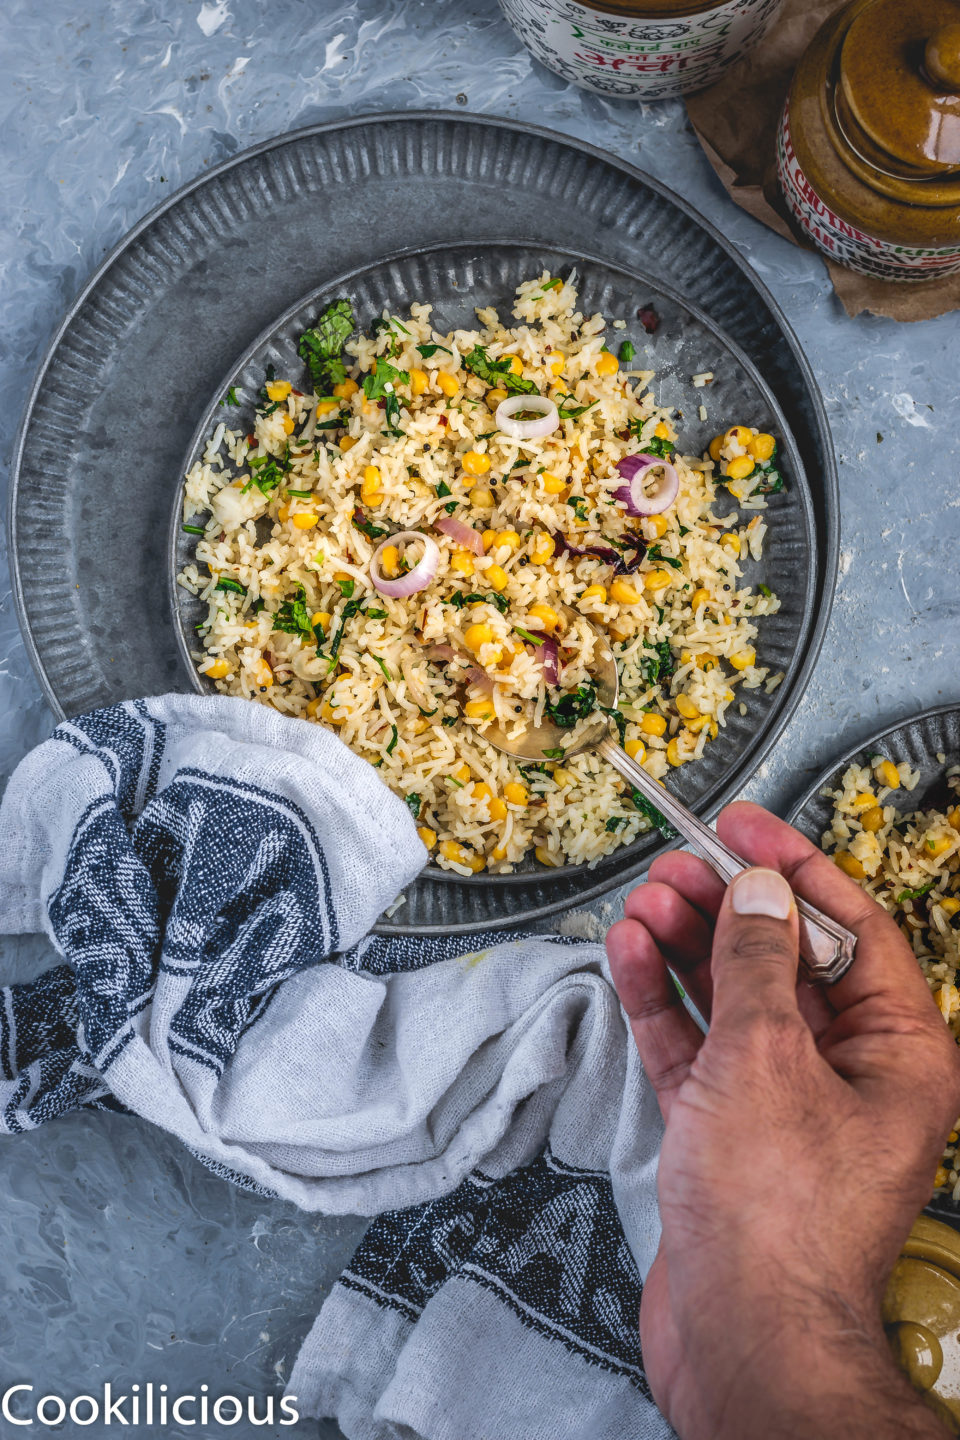 a hand holding a spoon and digging into a plate full of Cilantro, Spinach & Lentil Rice